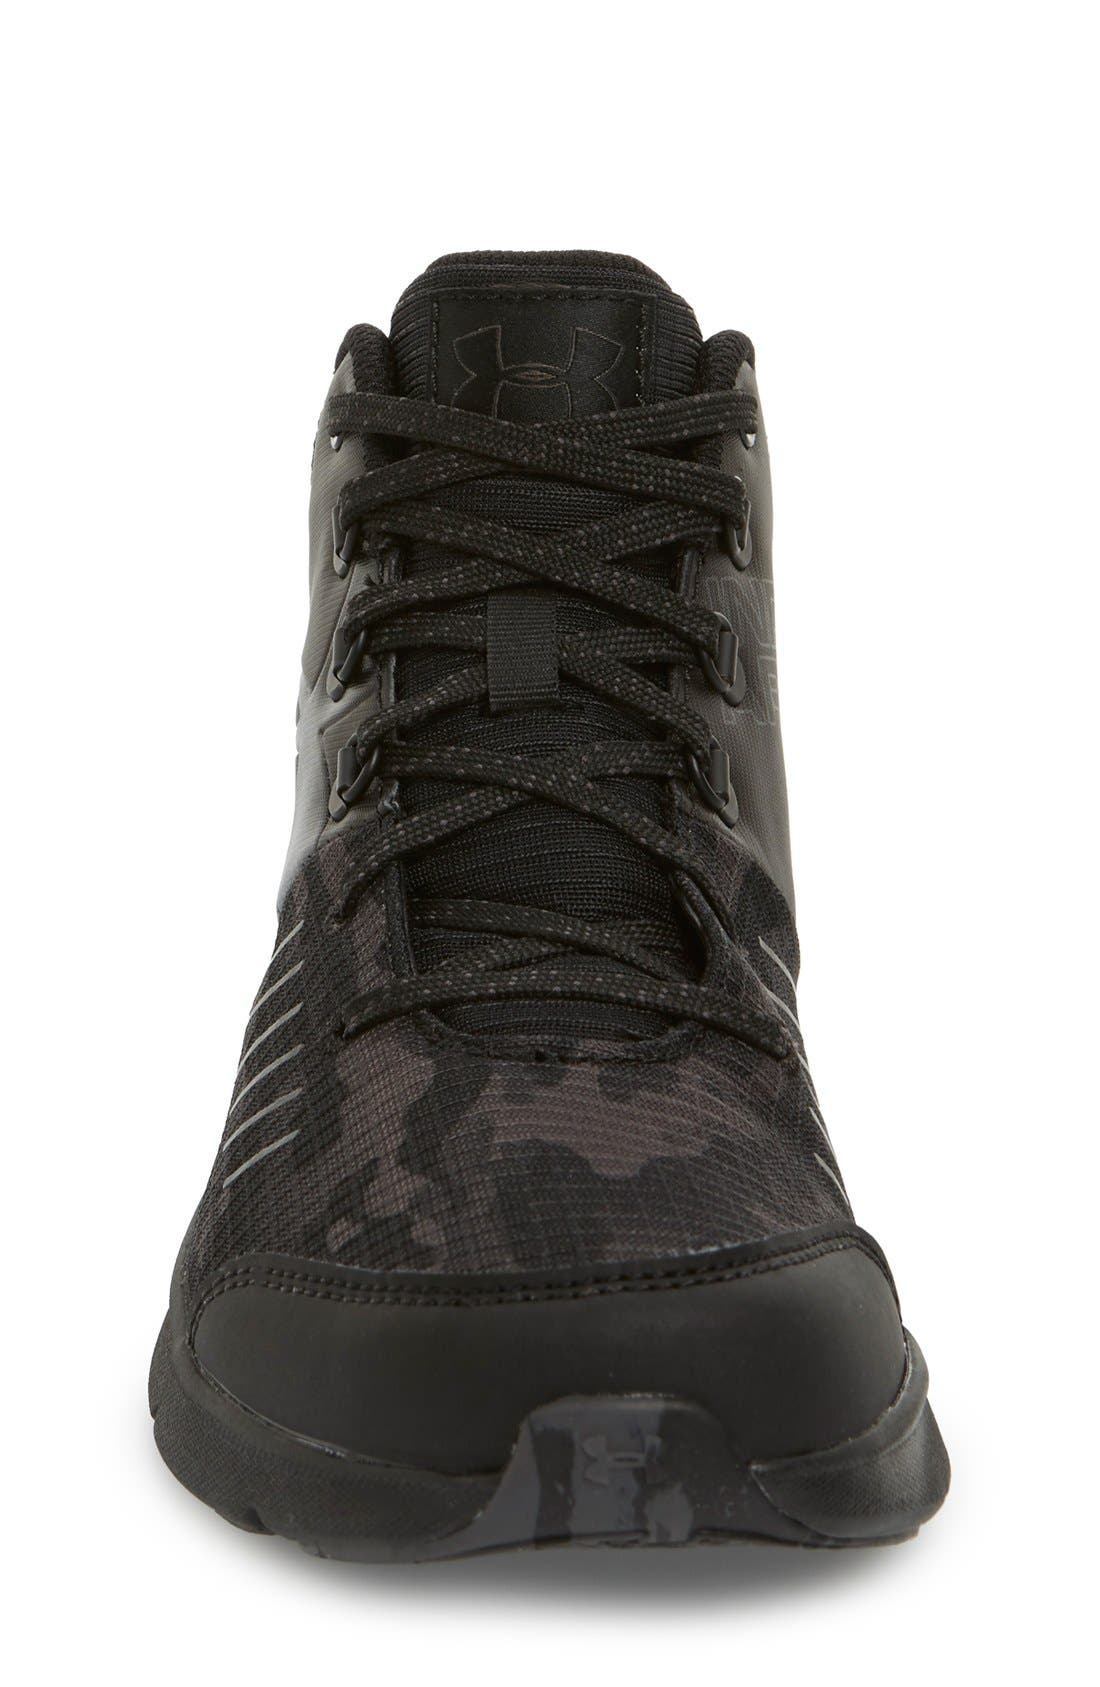 NEW Youth Girl/'s Under Armour UA OVERDRIVE MID GRIT 1273364-001 High Top Shoes